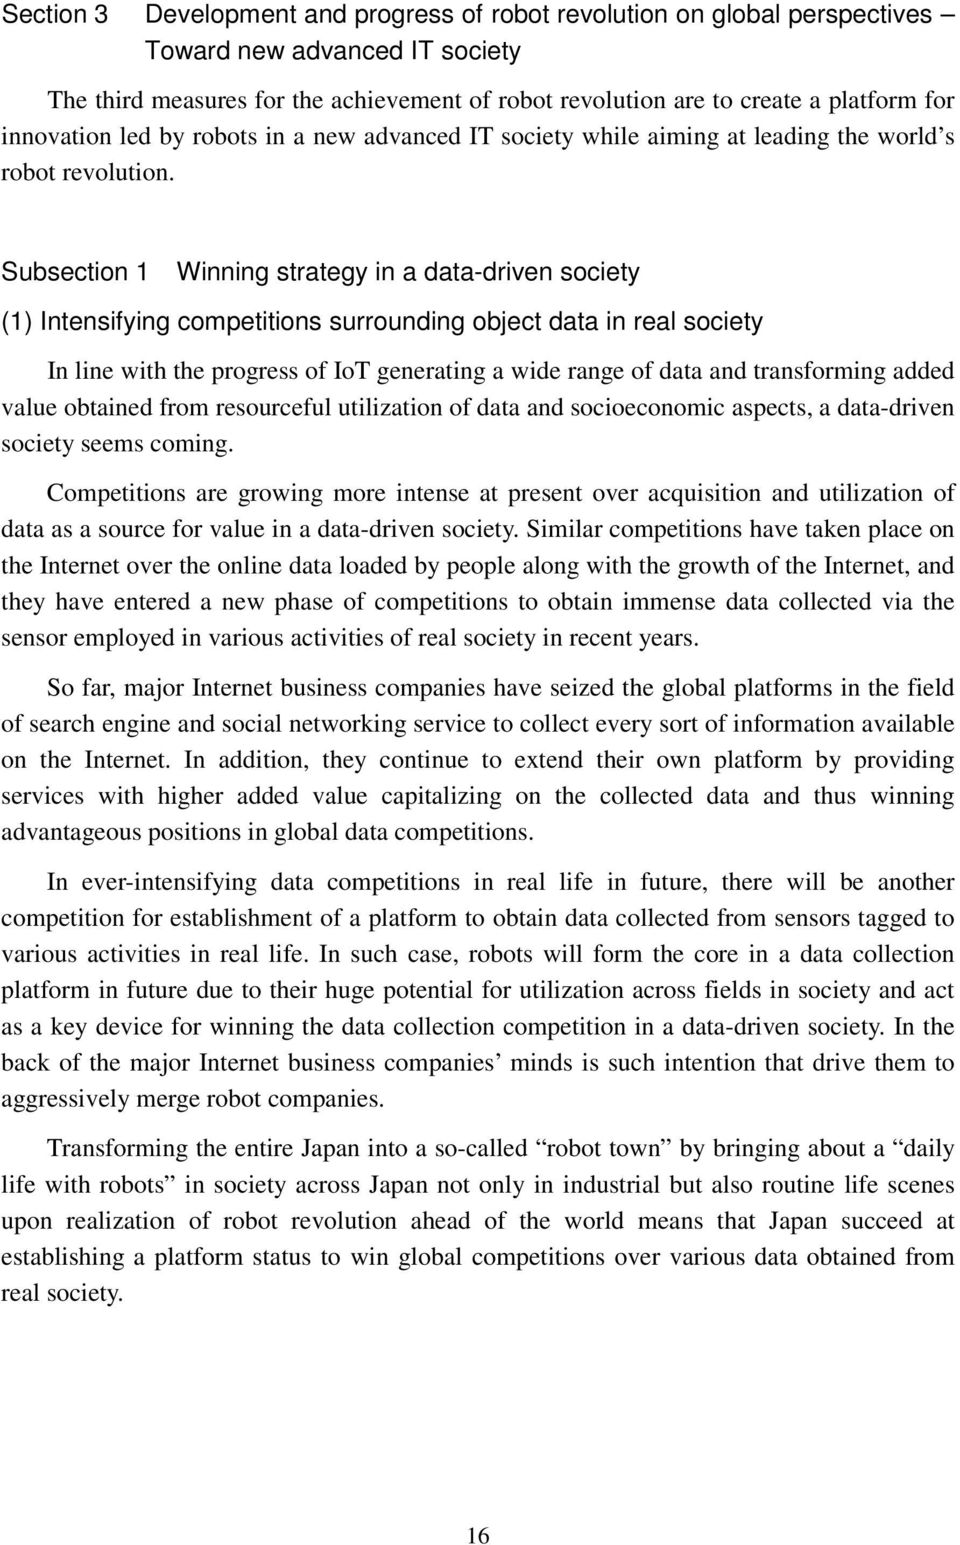 Subsection 1 Winning strategy in a data-driven society (1) Intensifying competitions surrounding object data in real society In line with the progress of IoT generating a wide range of data and